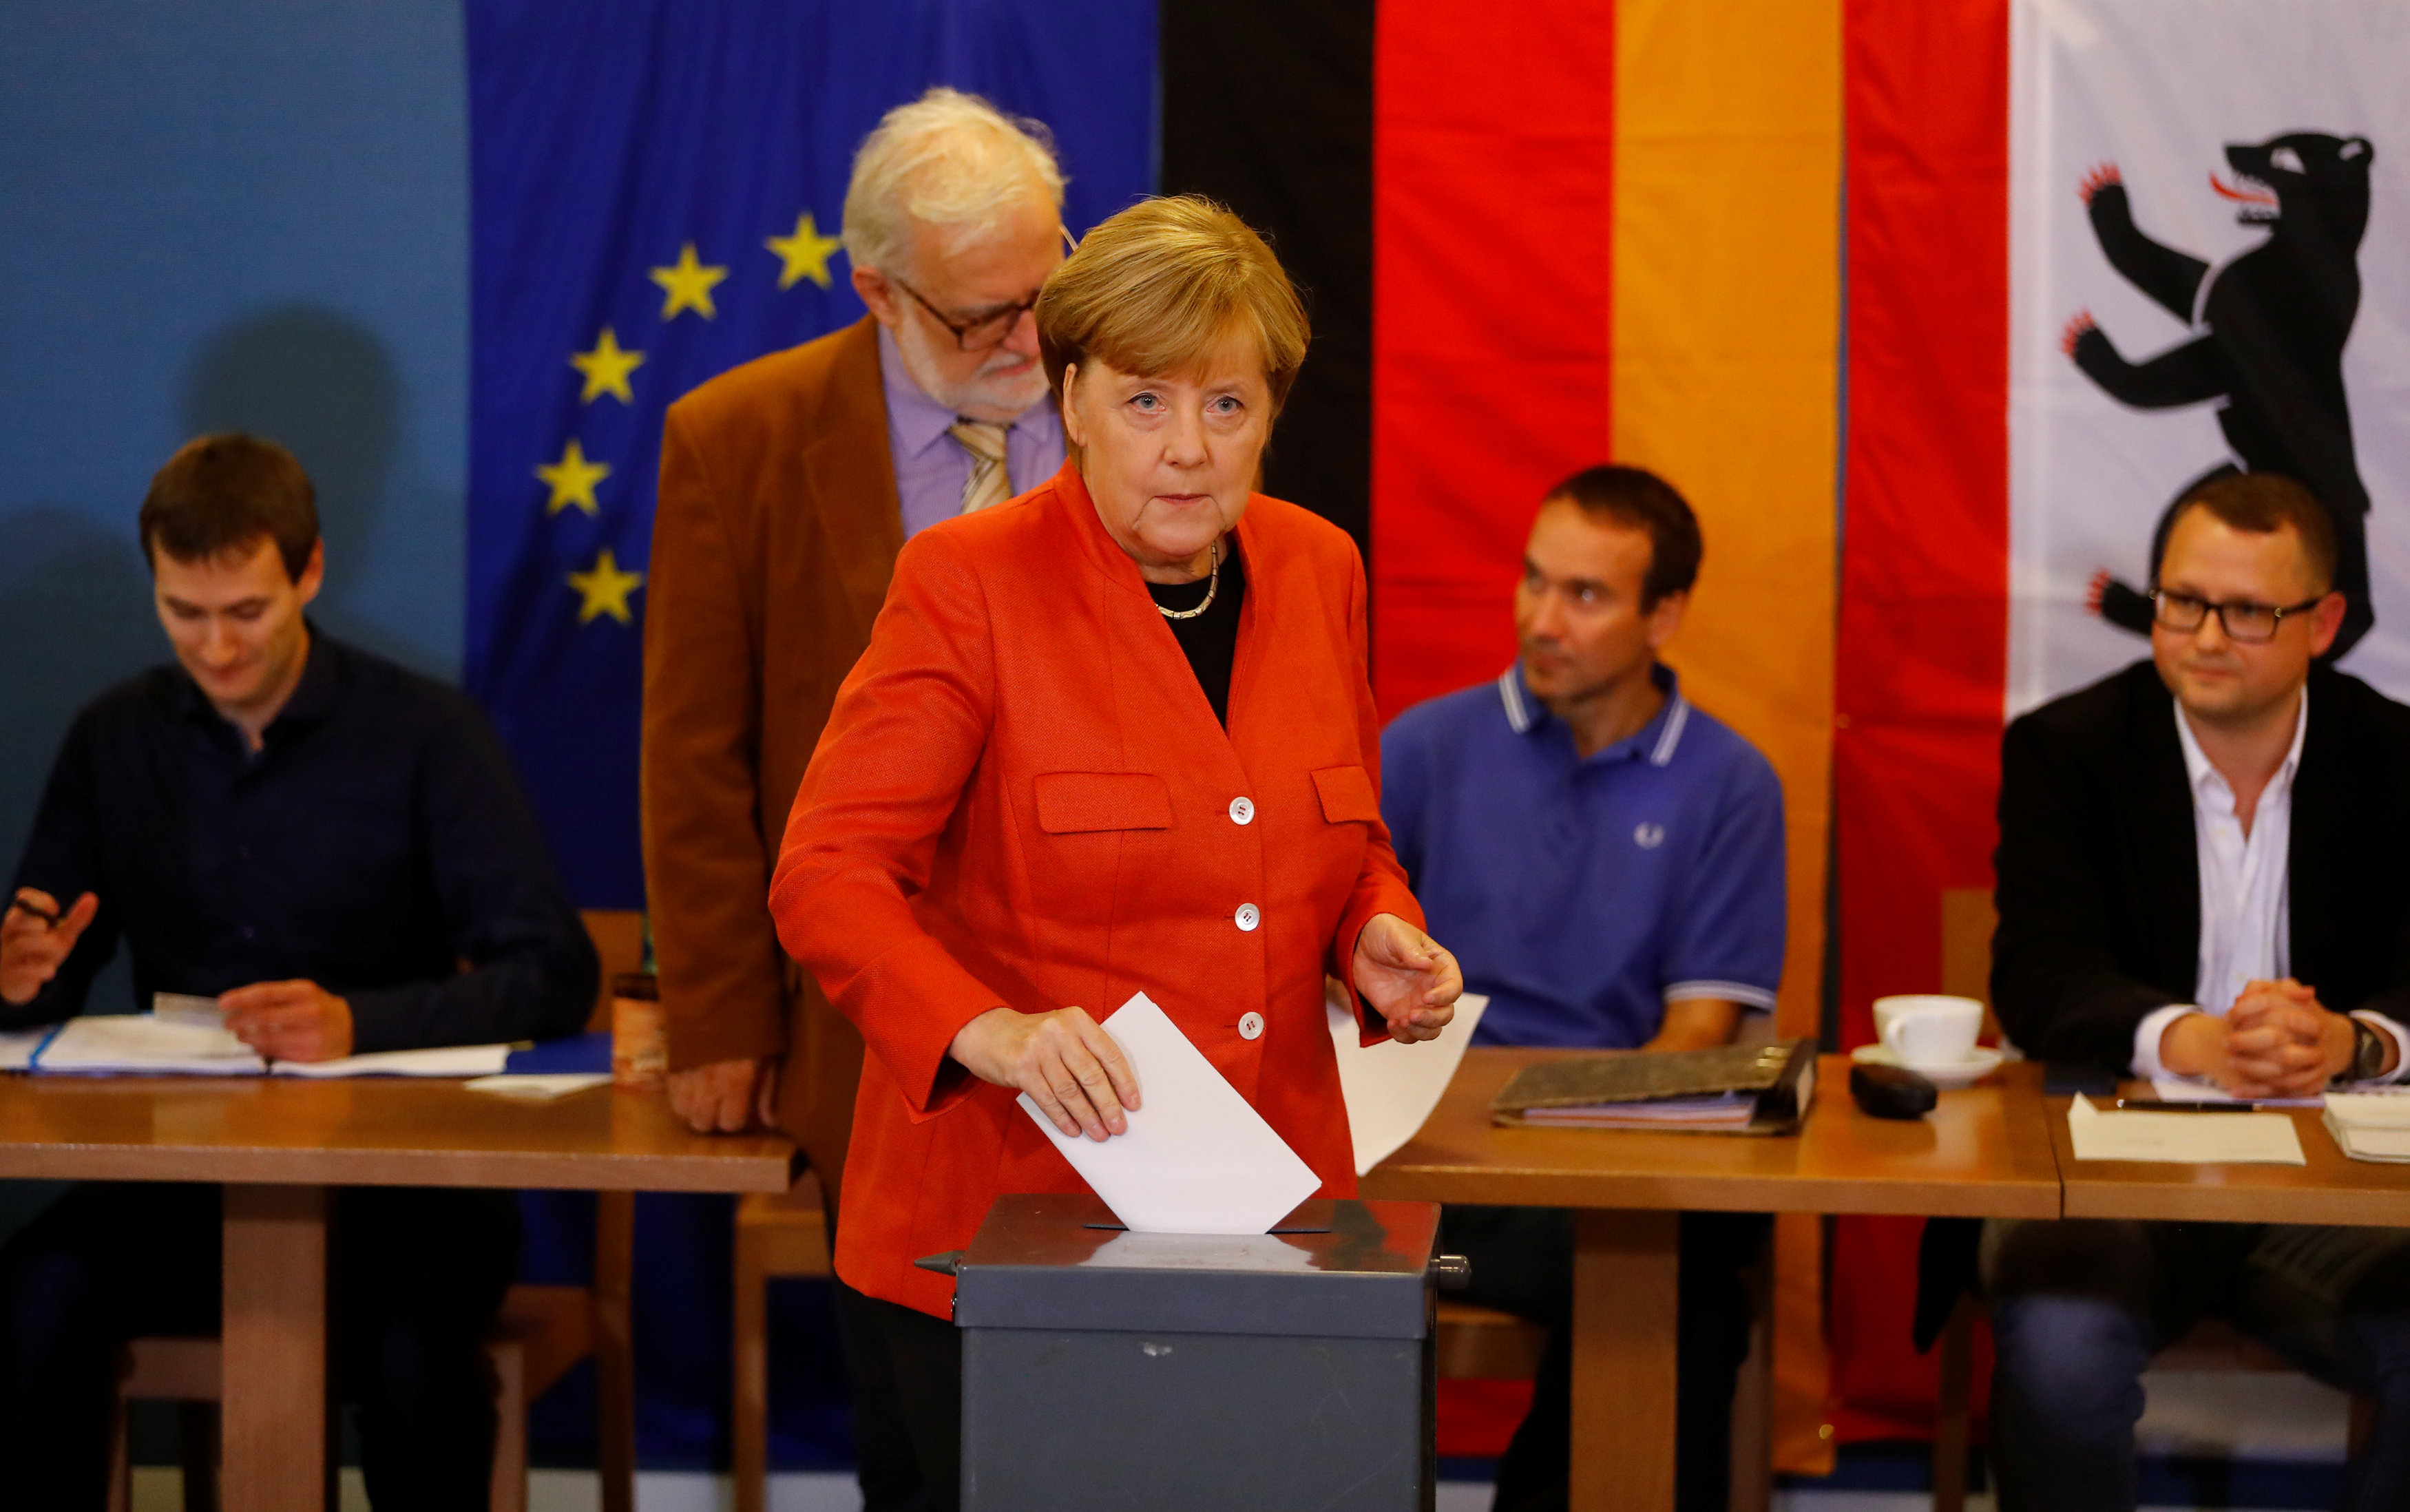 2017 09 24T123310Z 1576834506 RC1B340F1A60 RTRMADP 3 GERMANY ELECTION MERKEL VOTES